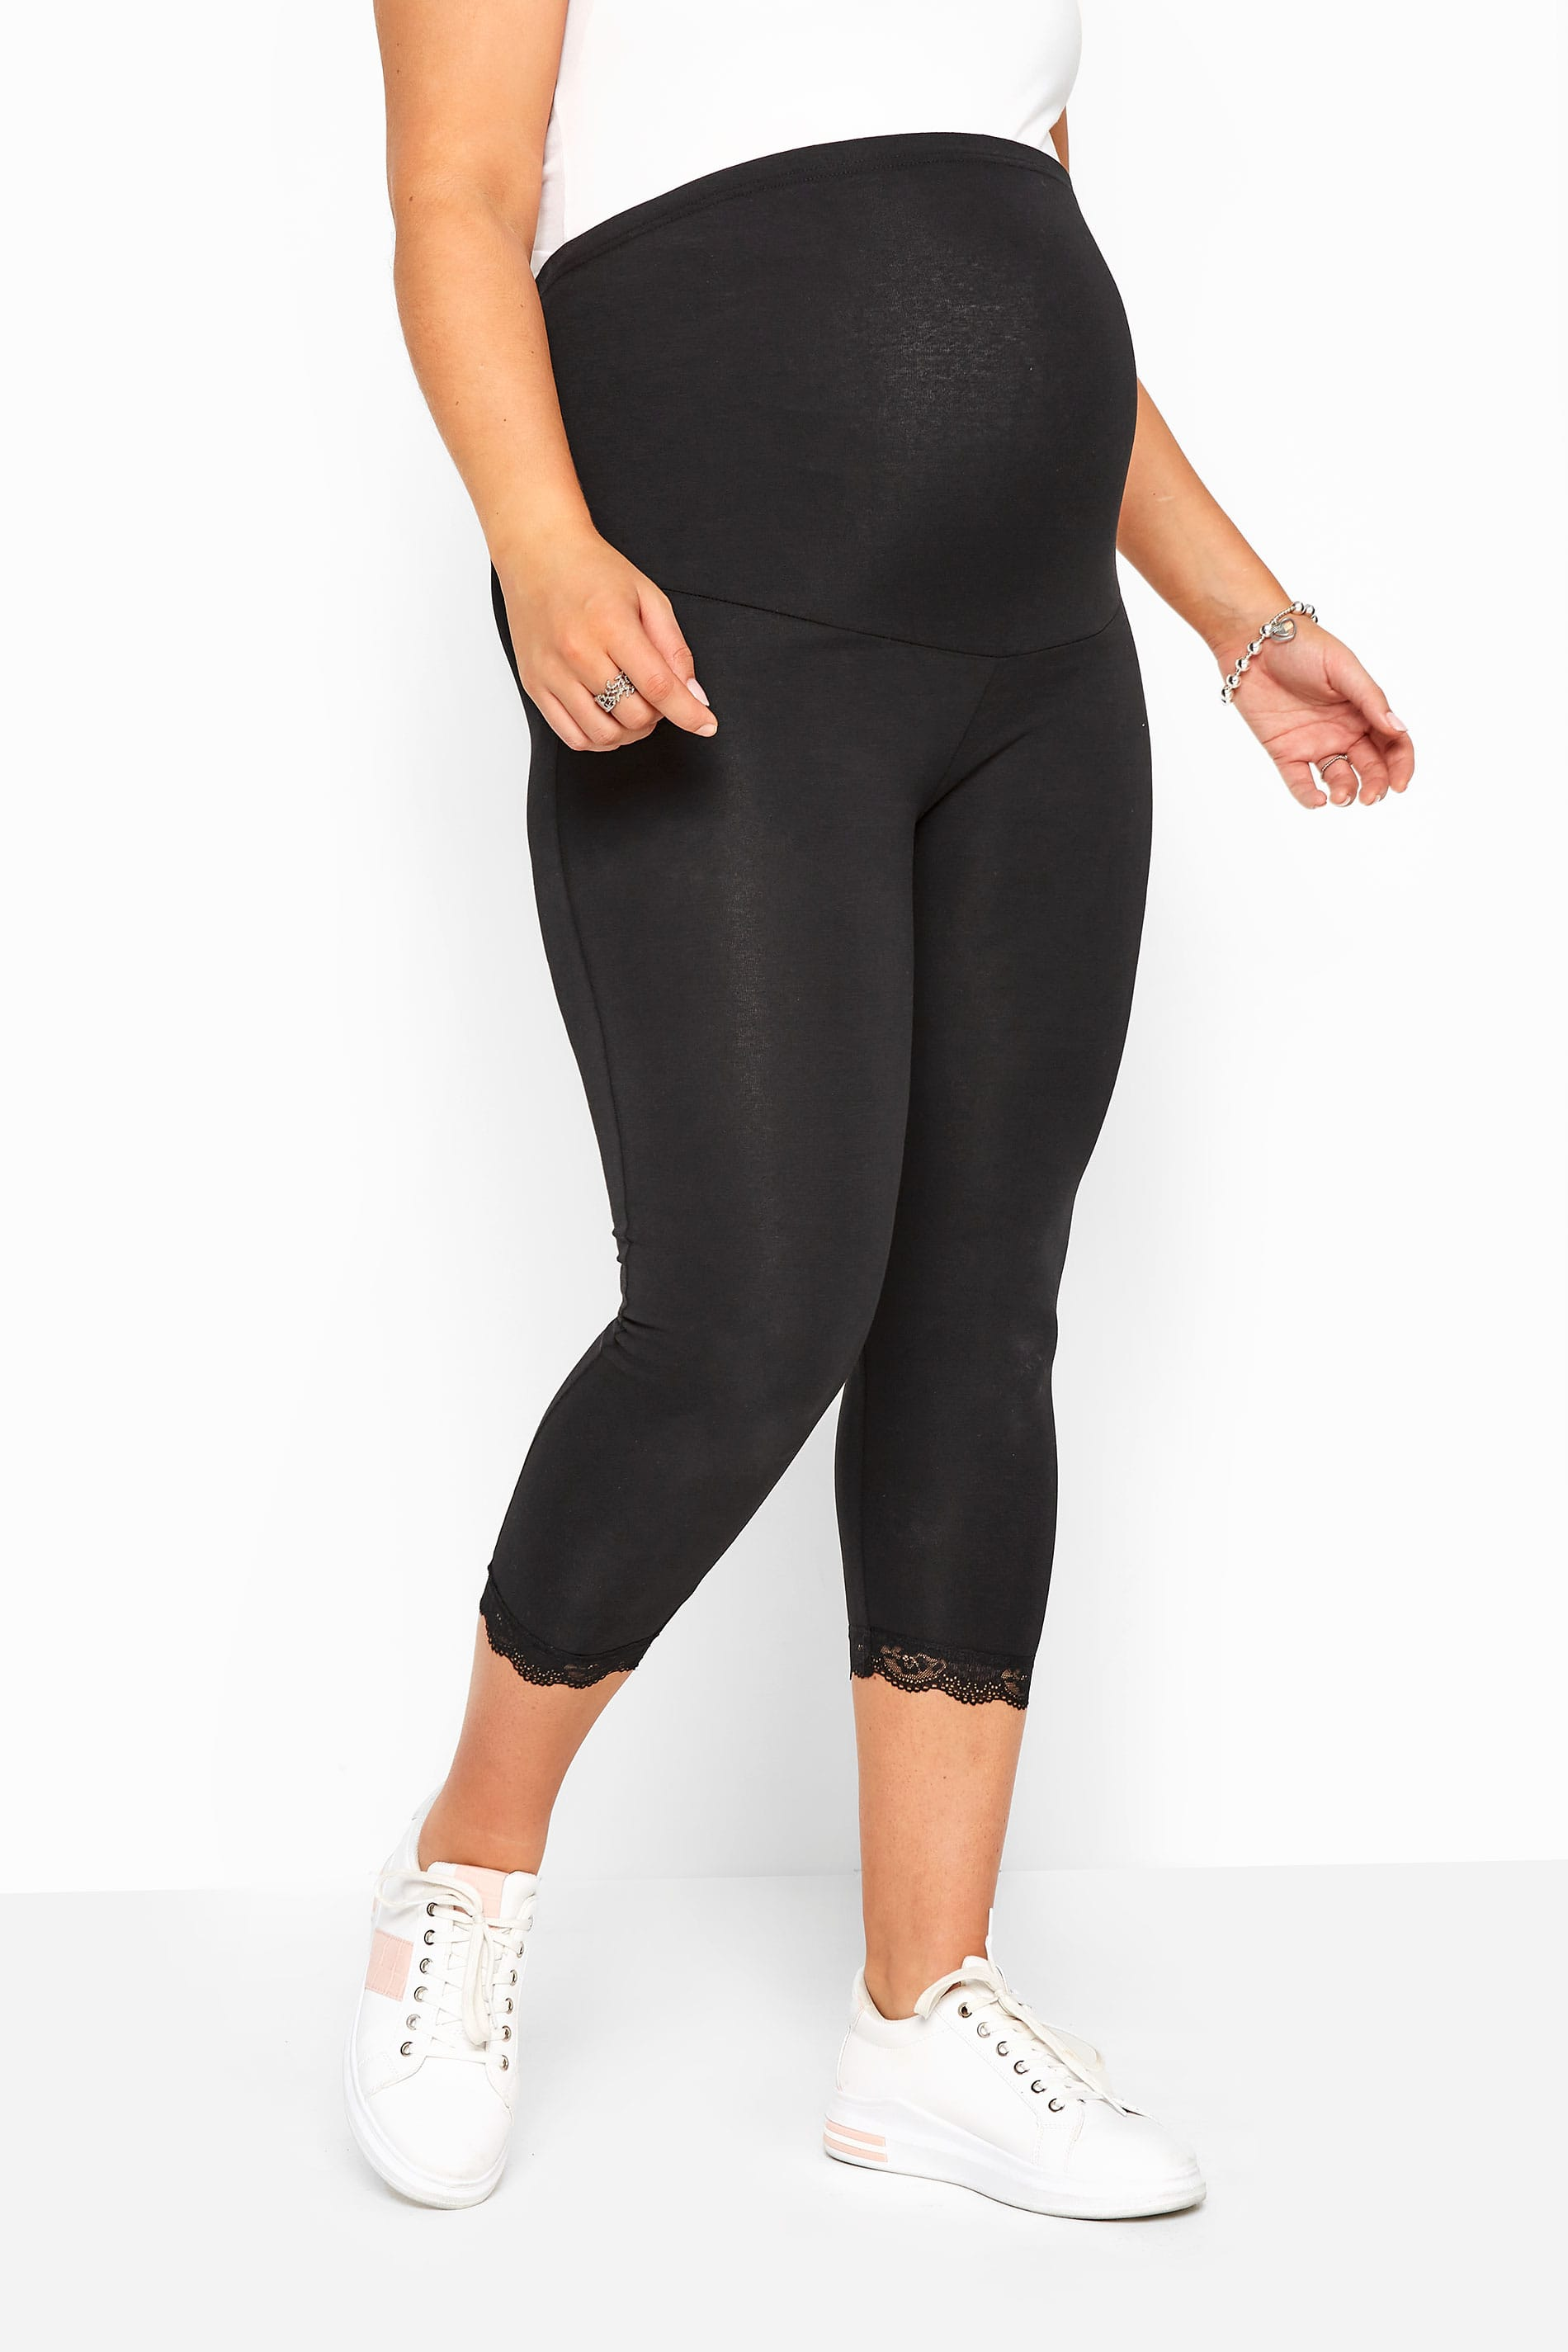 BUMP IT UP MATERNITY Zwarte legging met sierkant